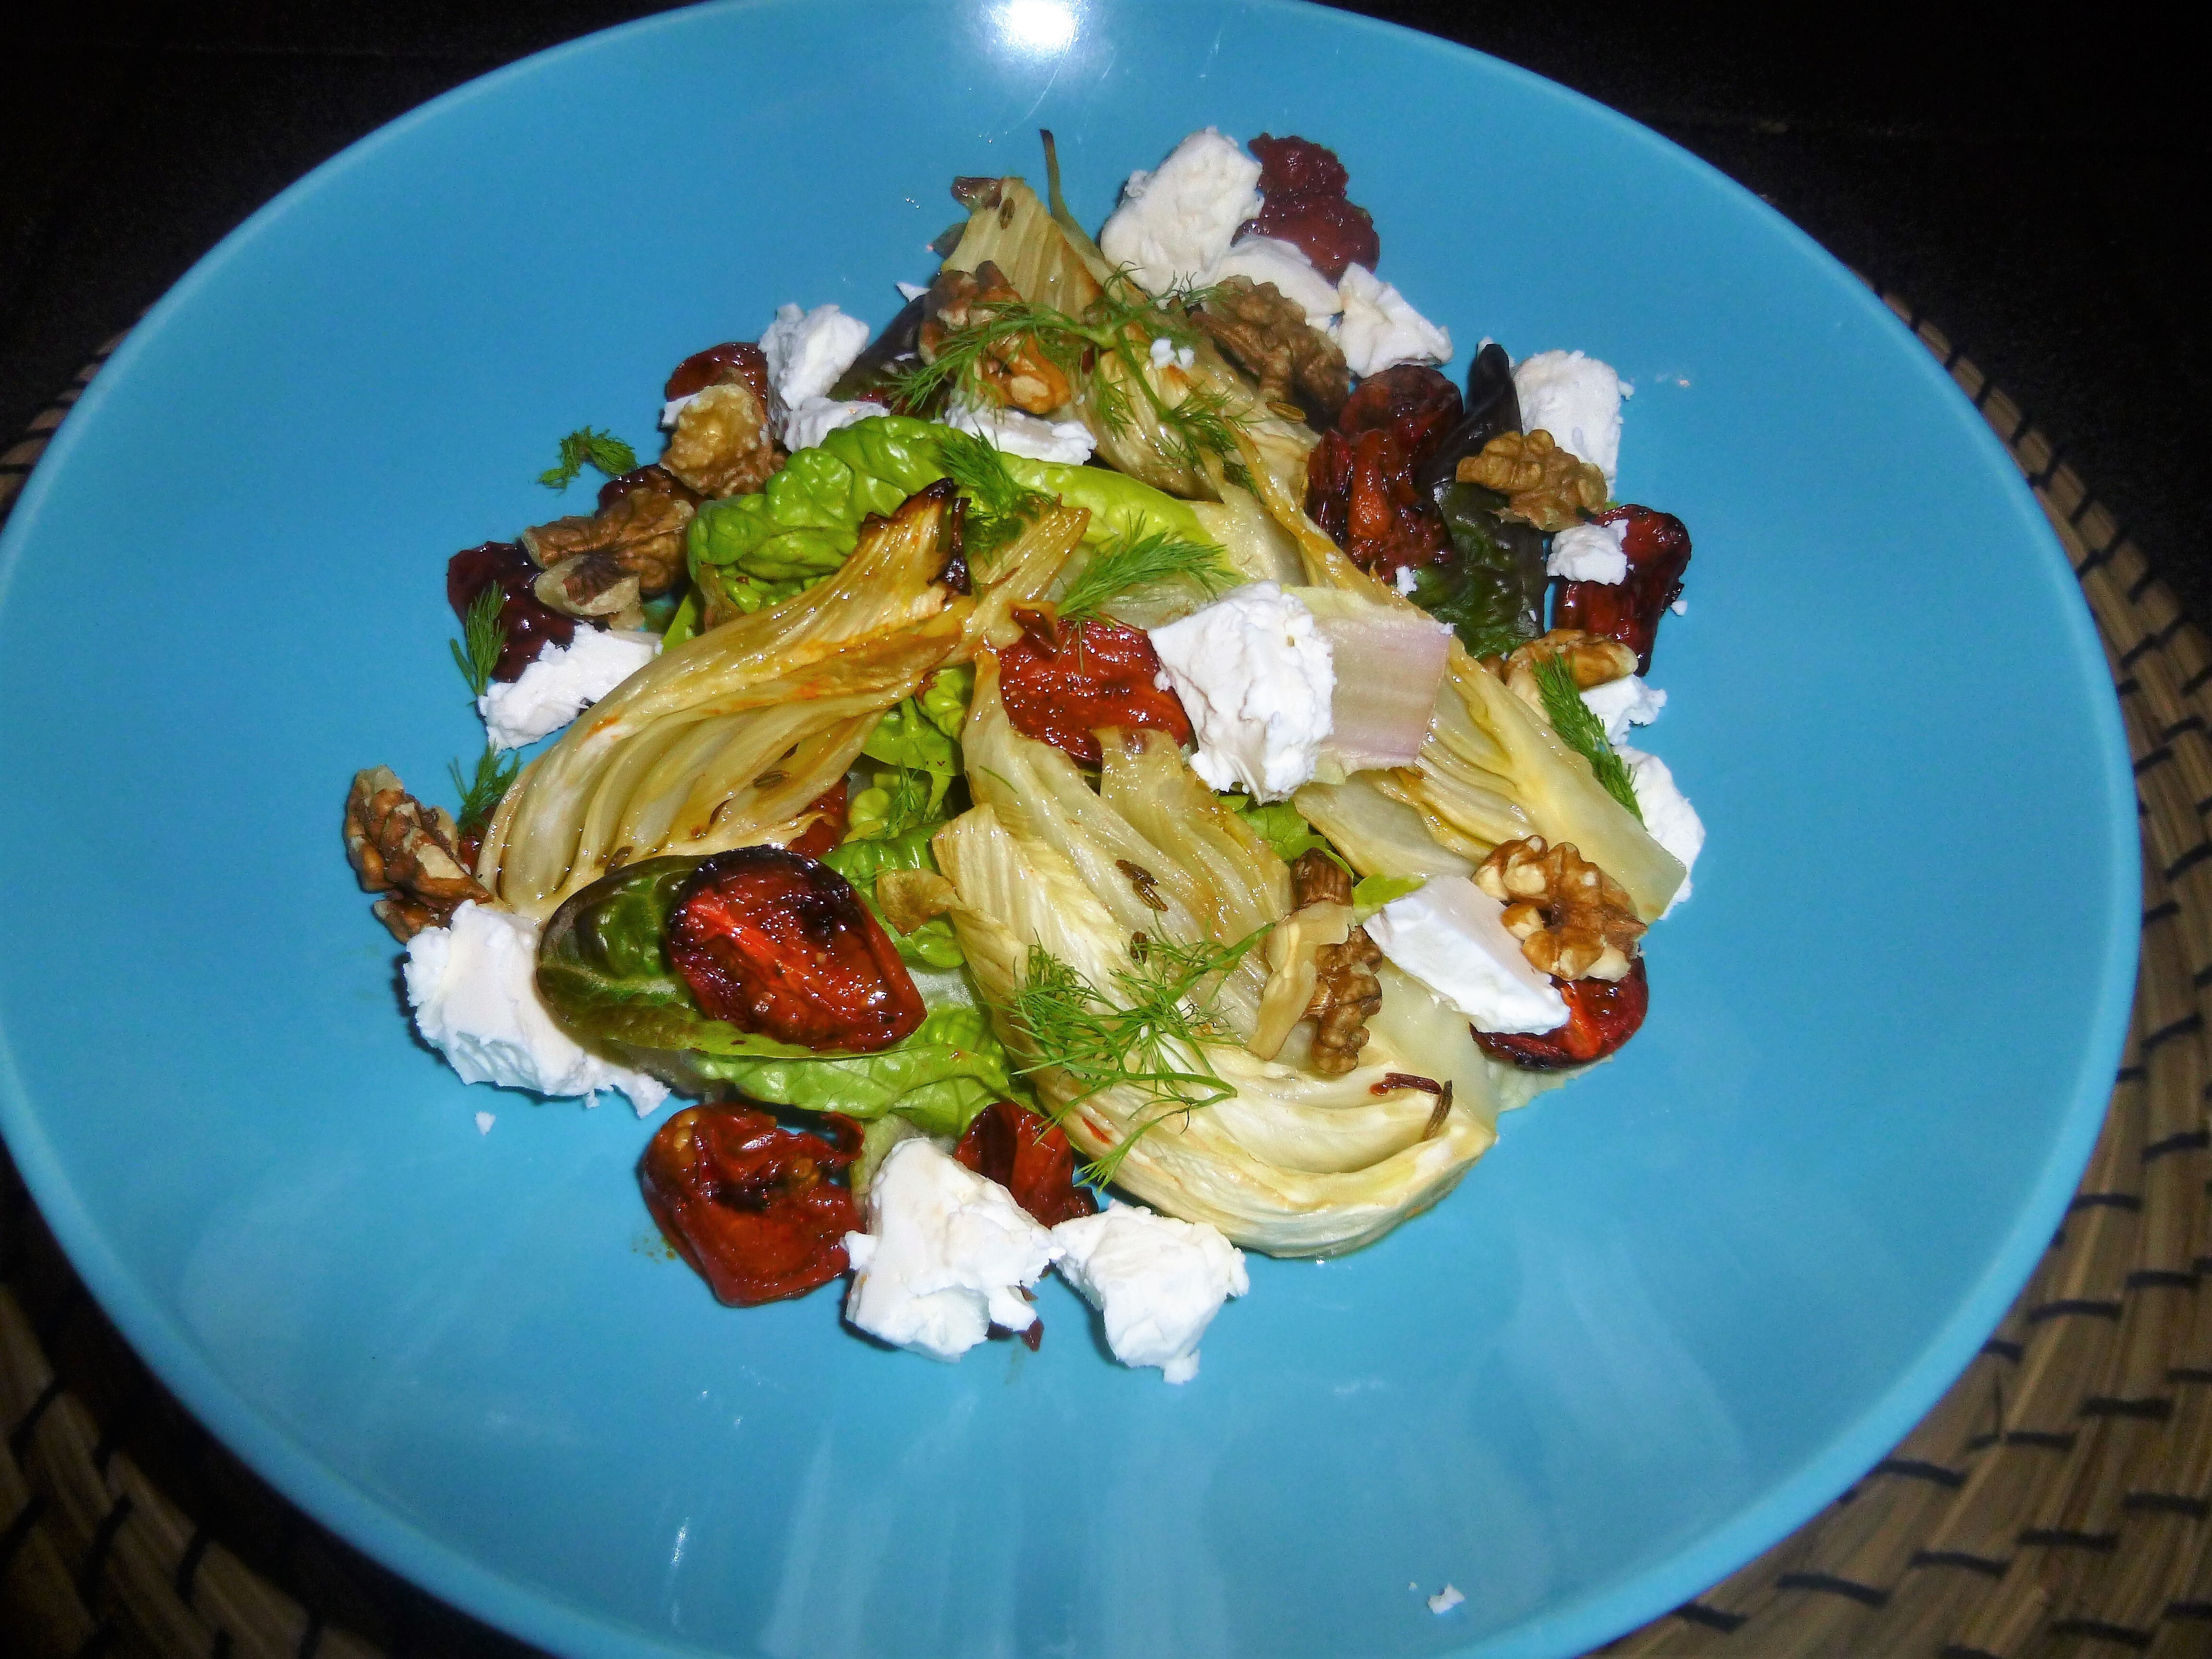 Feta, Roasted Fennel and Tomato Salad with a Balsamic Vinegar and Basil Dressing Recipe